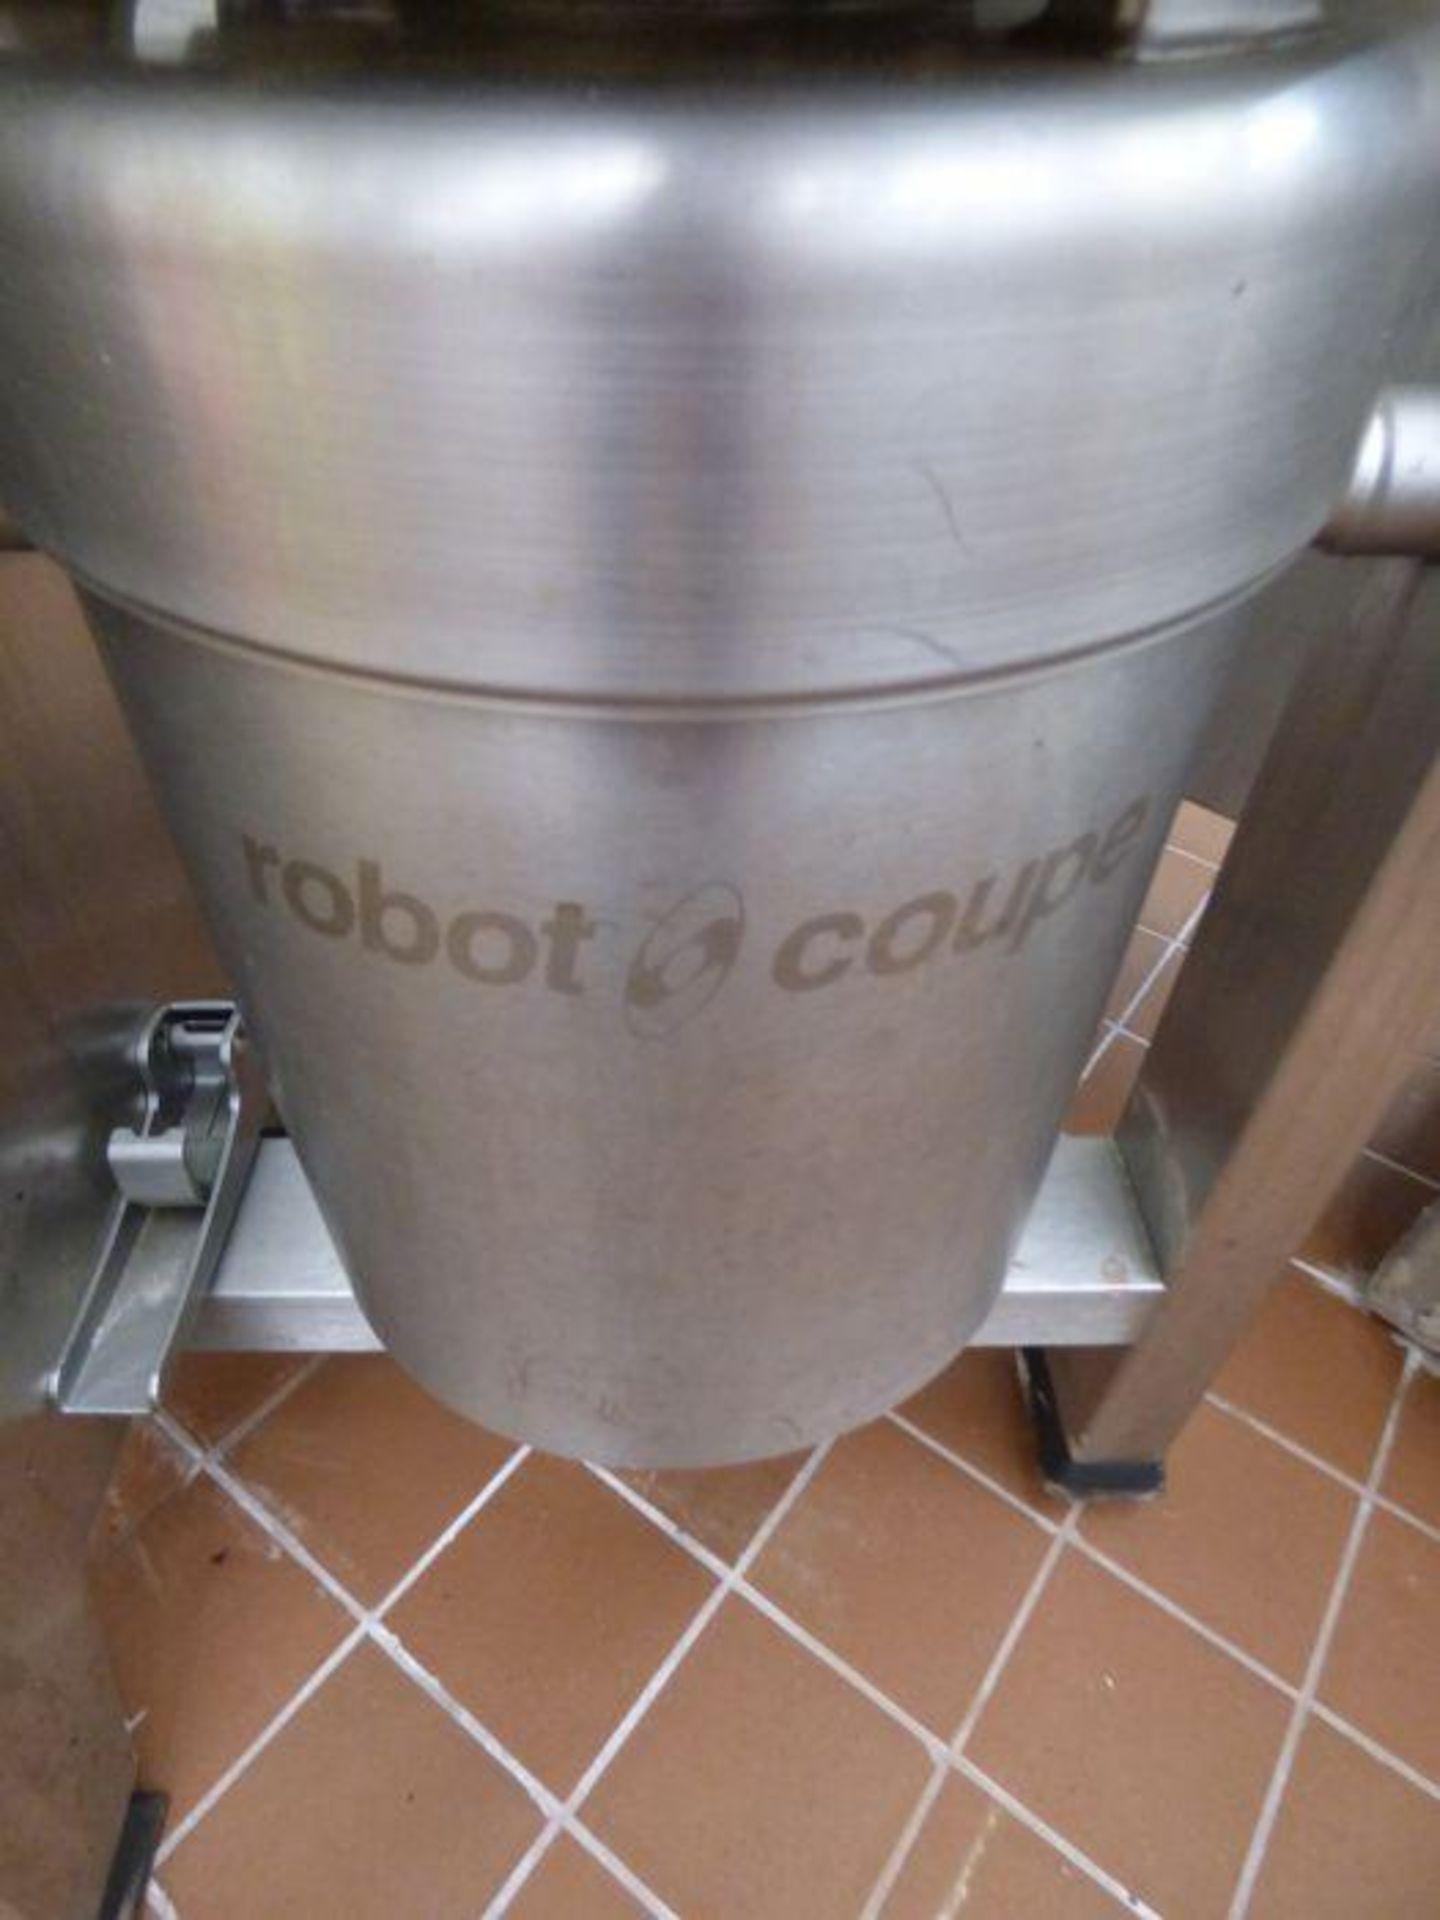 2014 Robot Coupe Vertical Cutter Mixer - Image 2 of 6